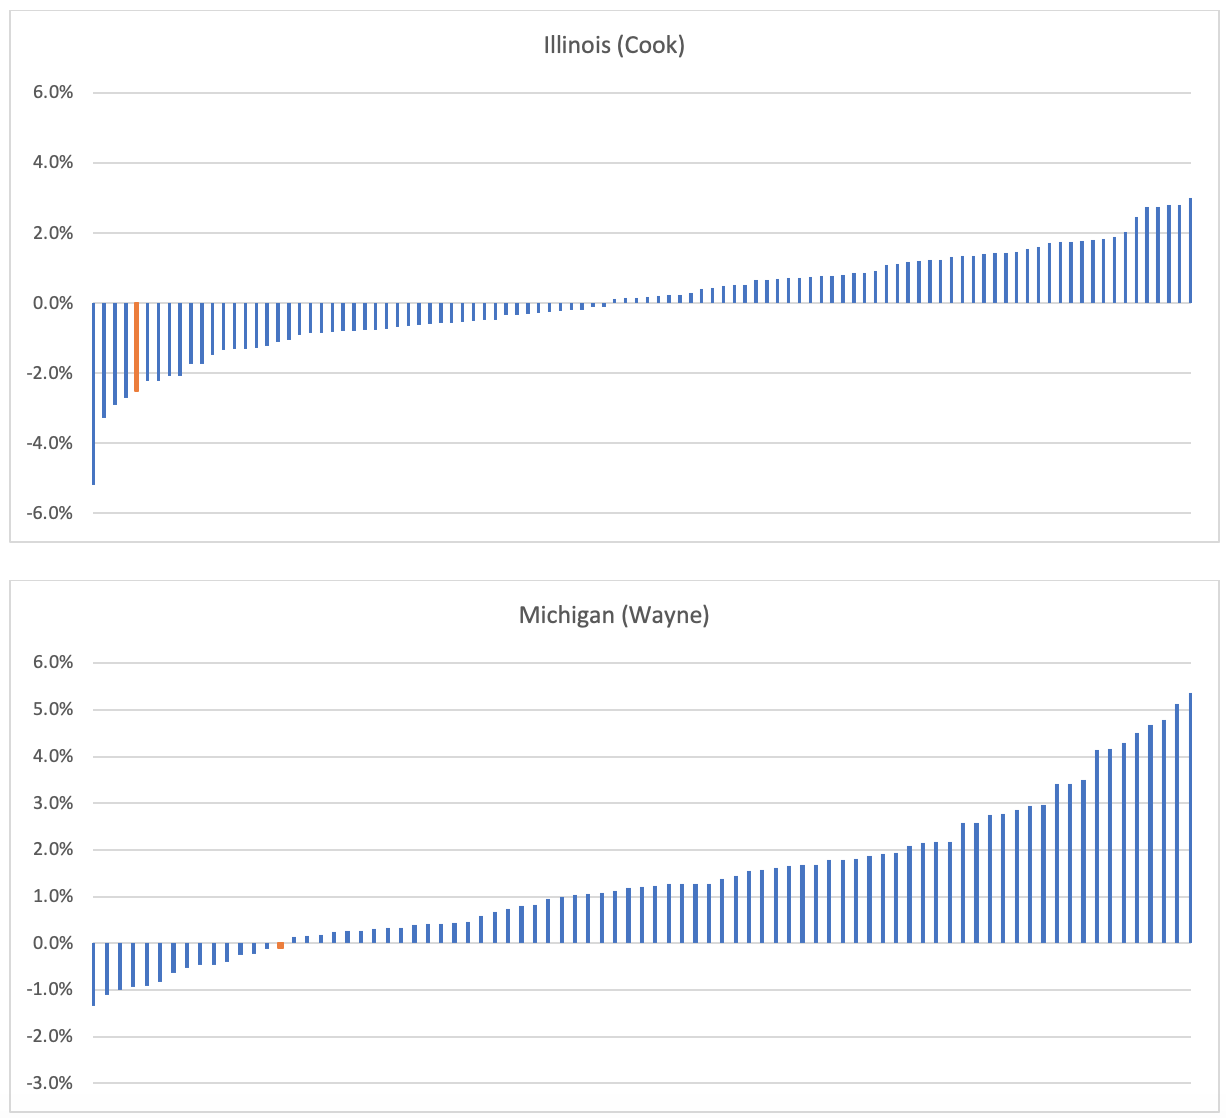 Screenshot of two charts displaying within-county changes in Democrat party vote percentage for Cook County, Illinois, and Wayne county, Michigan (Seth Kalkala) spectator.org